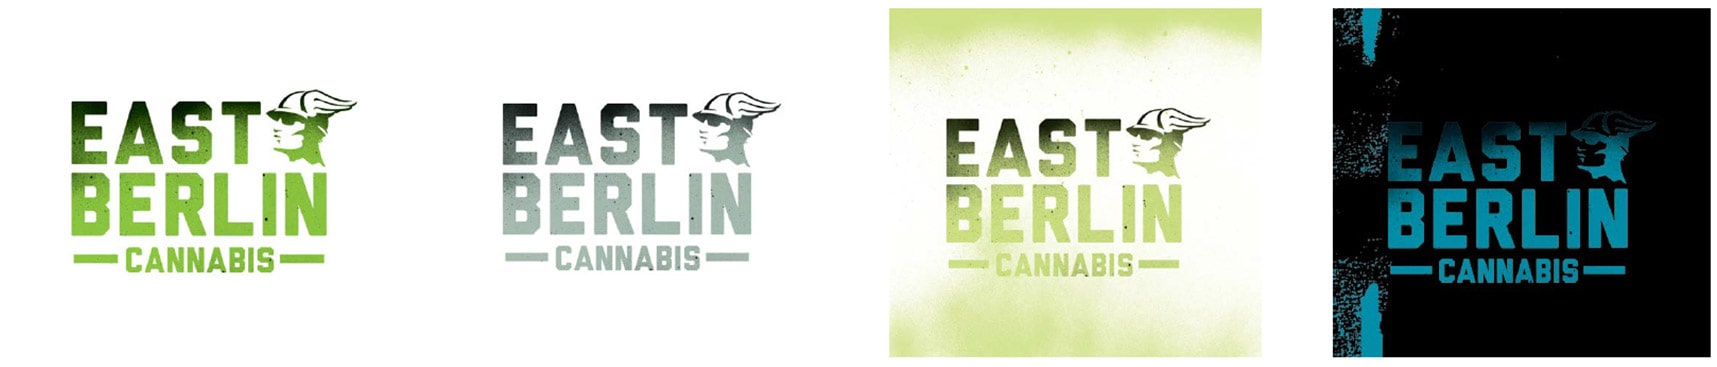 East Berlin Brand - Malolo Design Co.